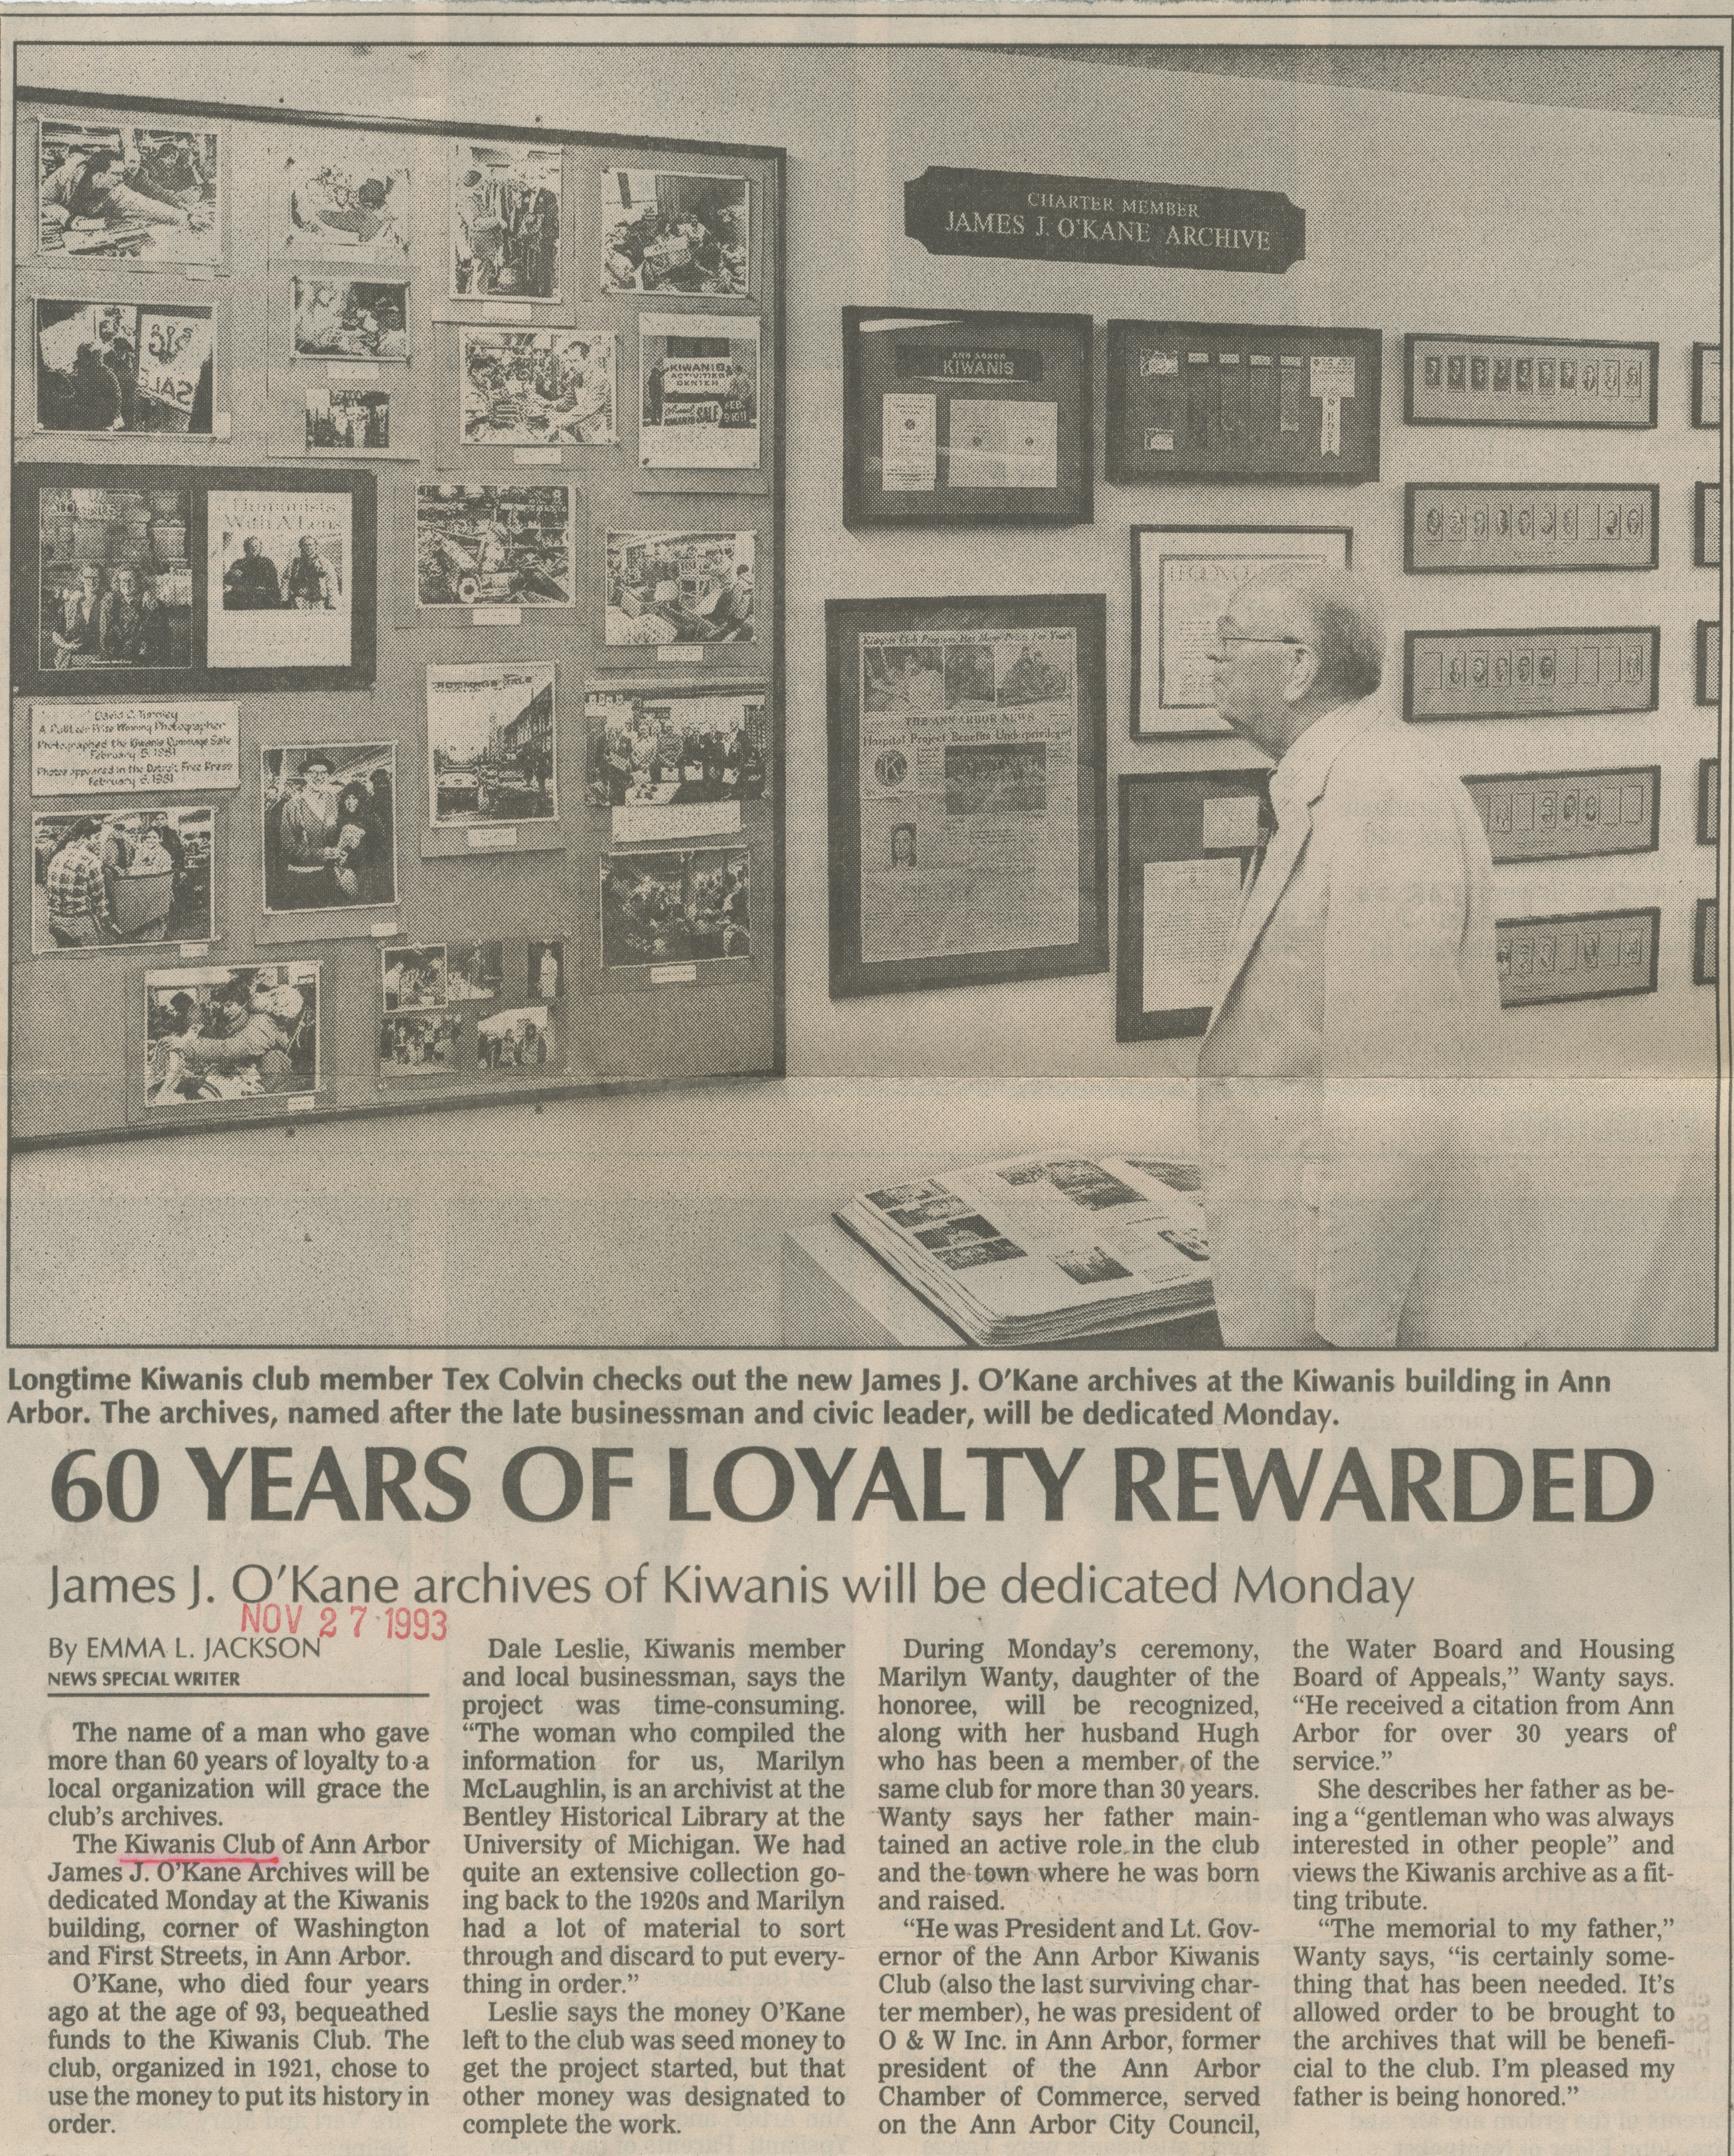 60 Years Of Loyalty Rewarded image